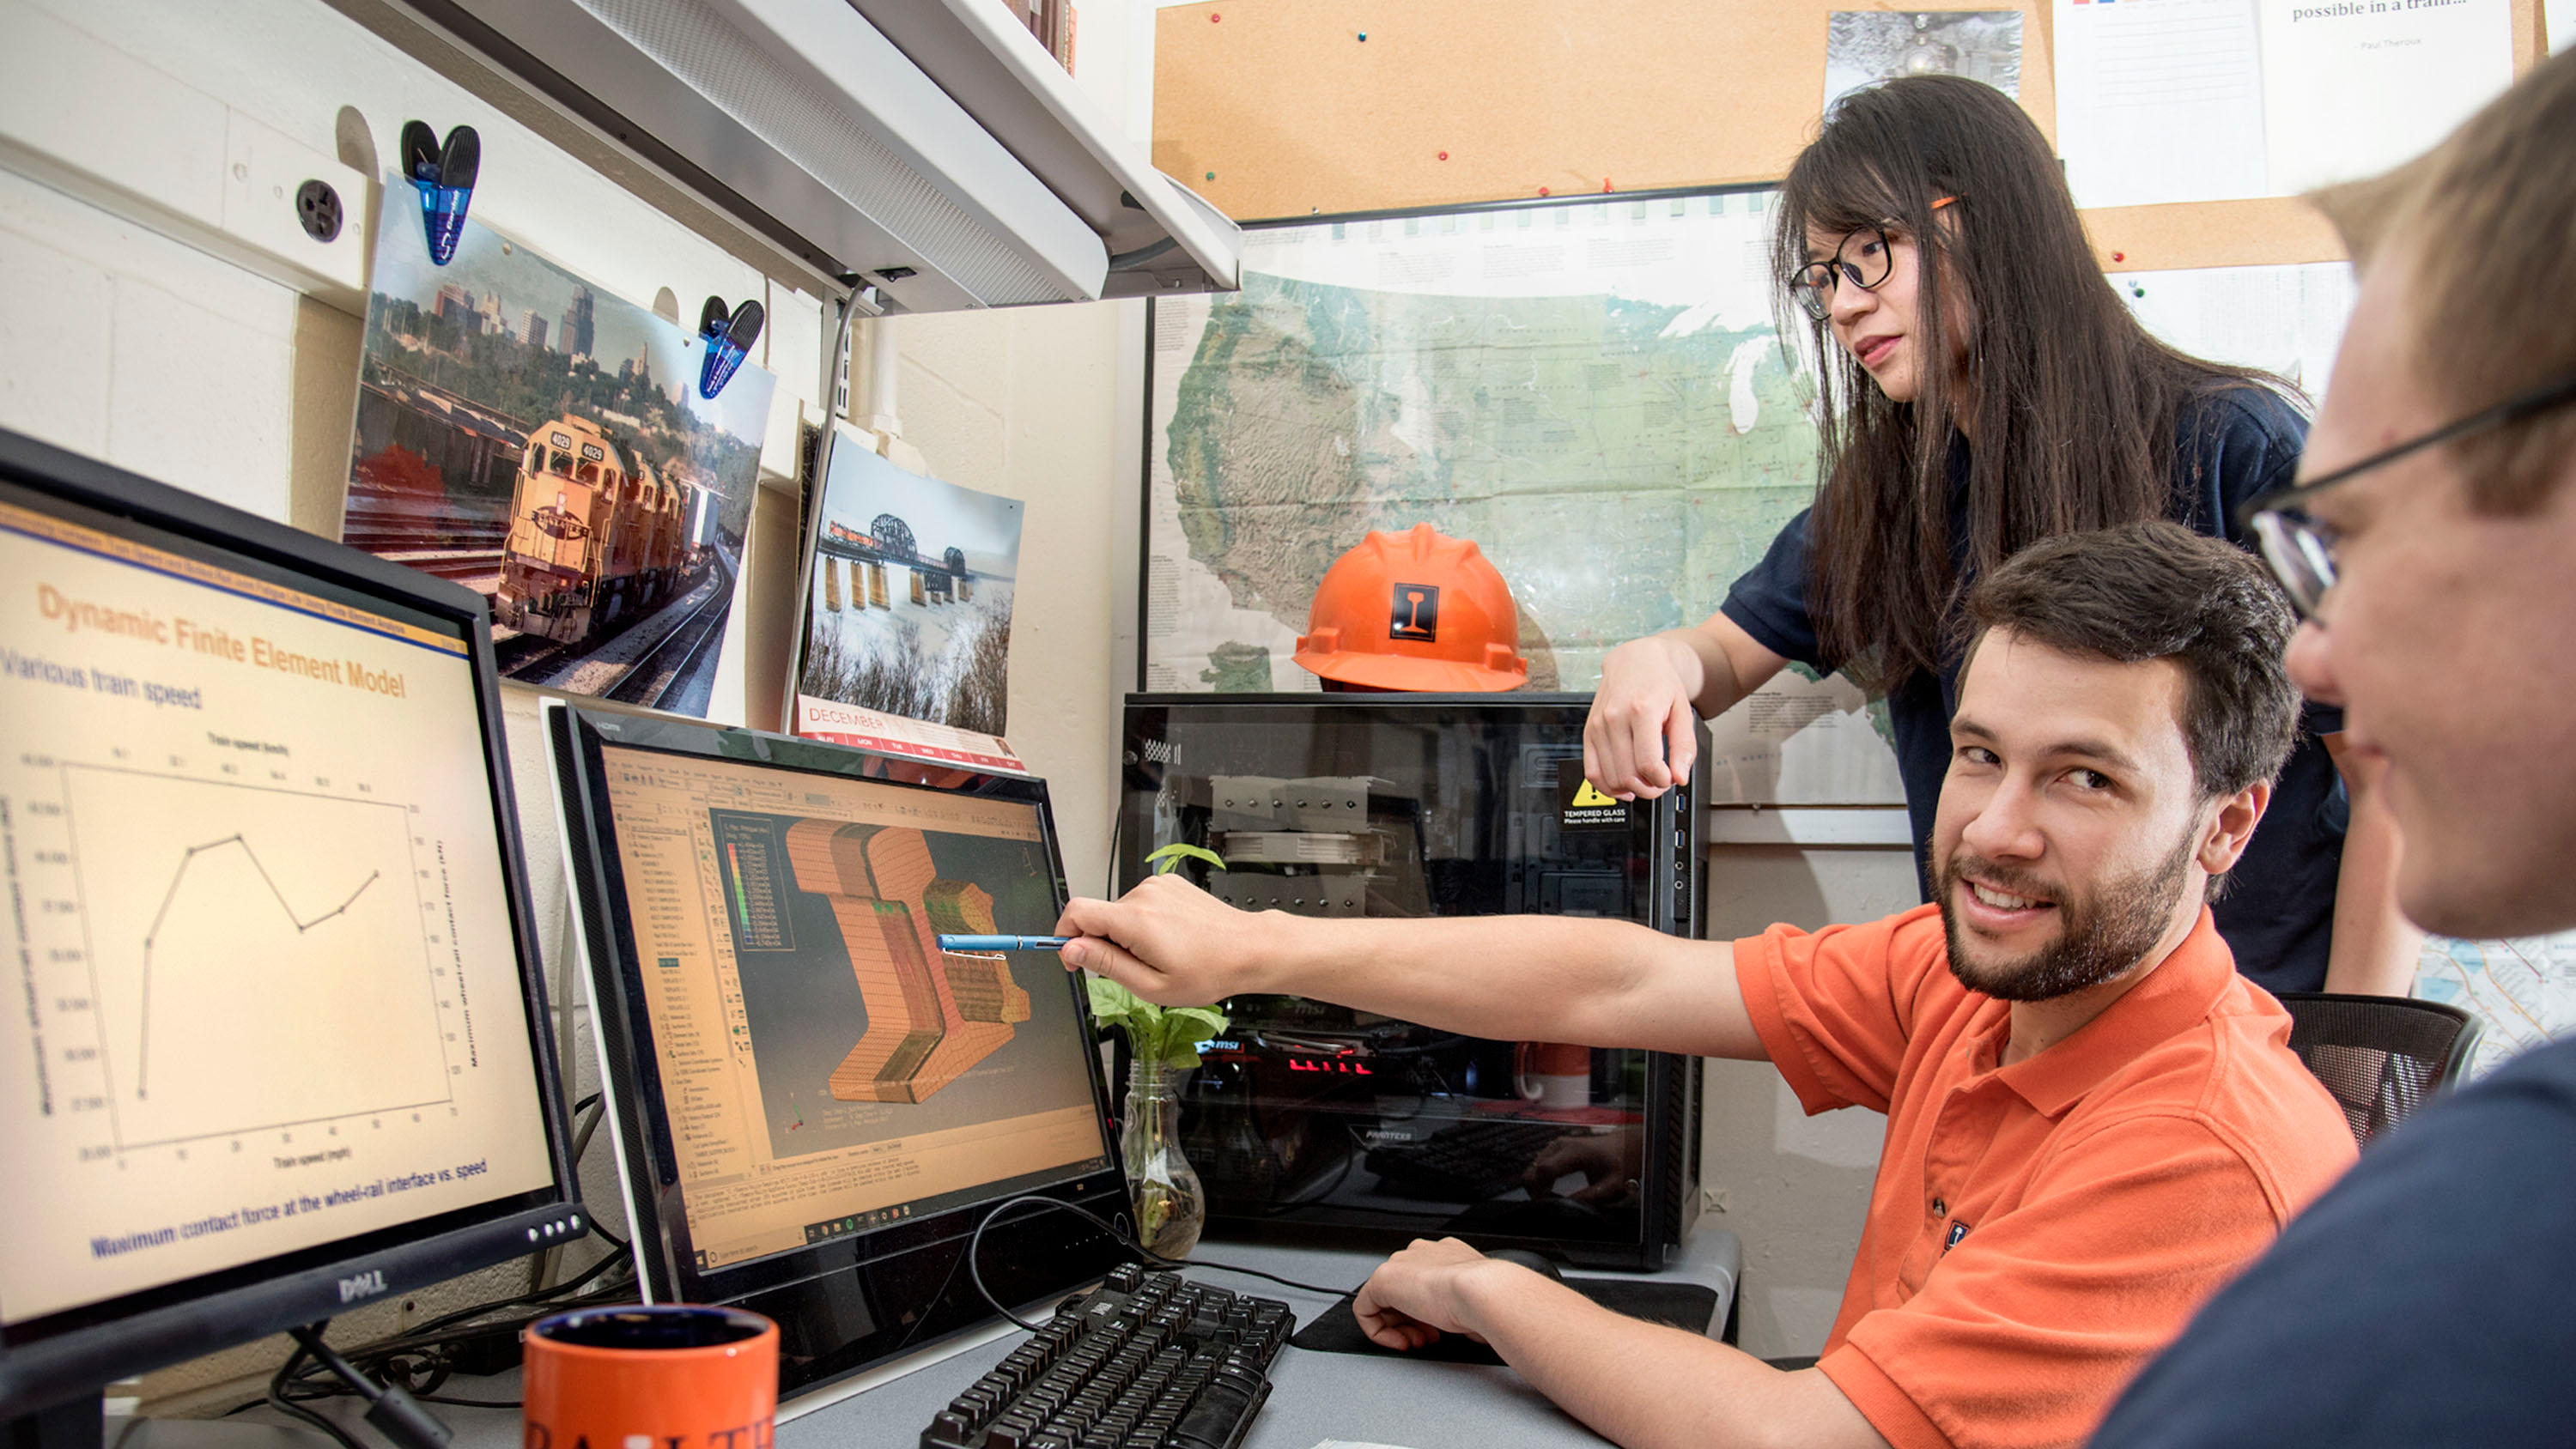 Railway Engineering Students discuss modeling and simulation software